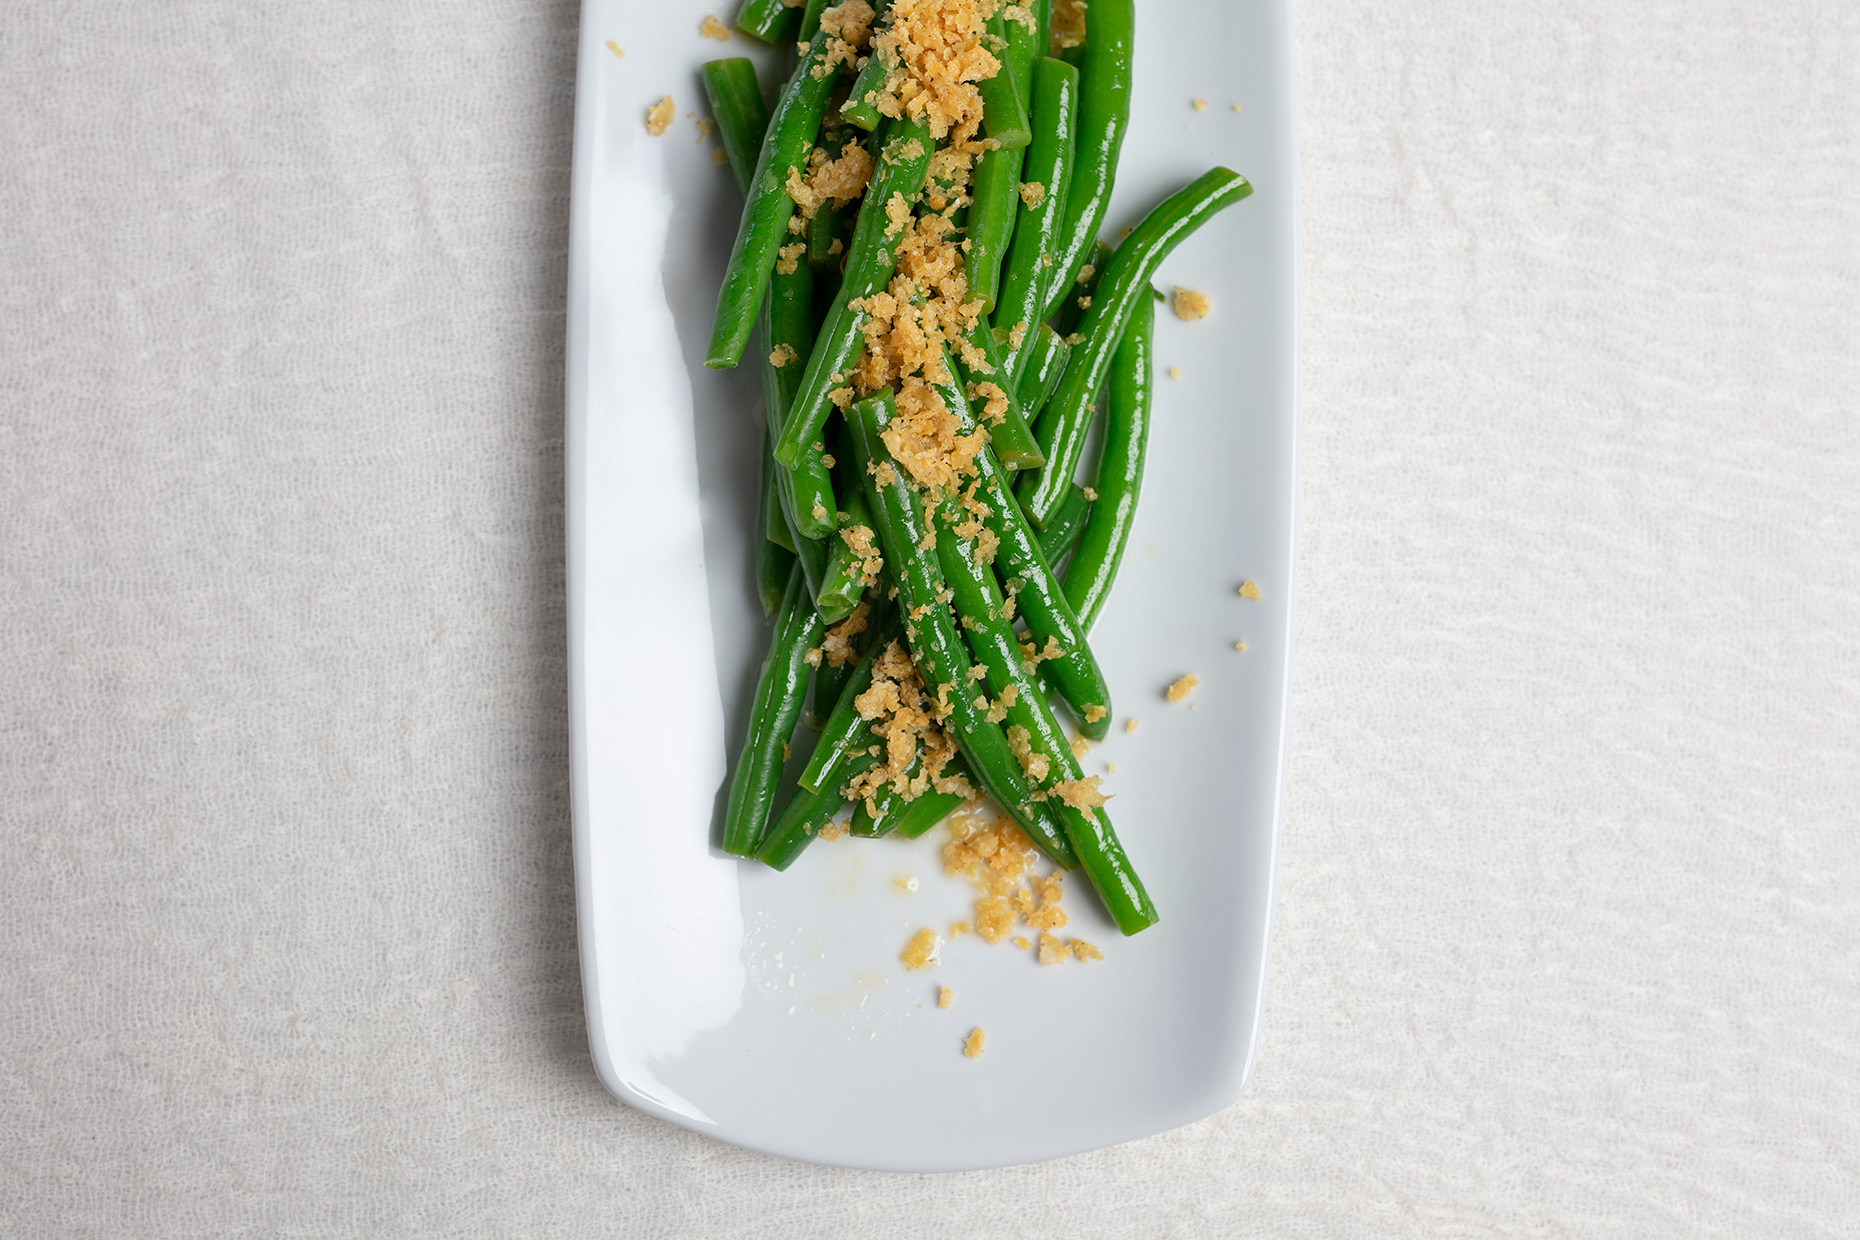 LemonGreenBeans036